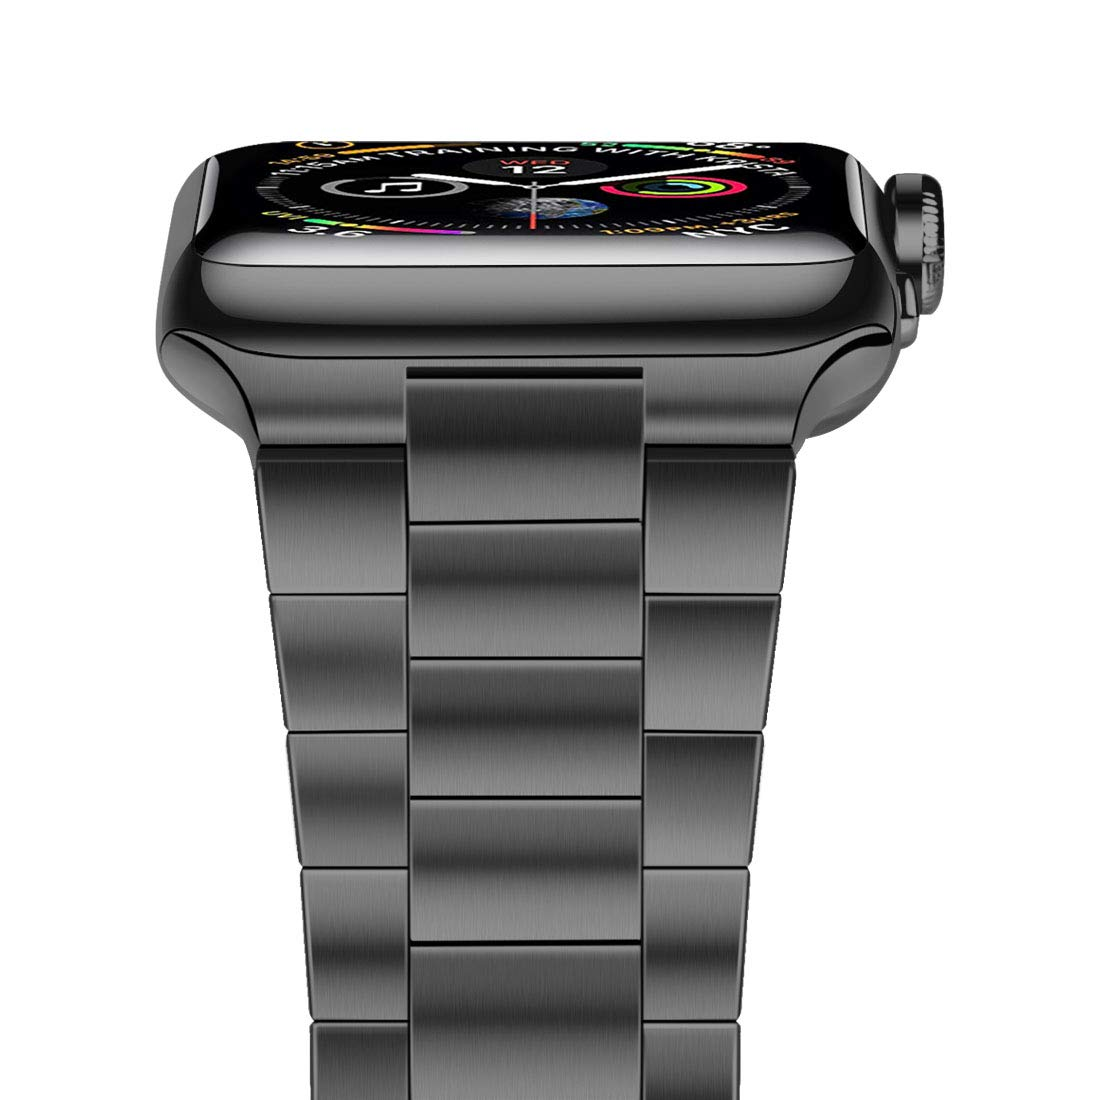 iiteeology Compatible with Apple Watch Band 42mm 44mm, Upgraded Version Solid Stainless Steel Band Business Replacement iWatch Strap for Apple Watch Series 4/3/2/1 - Space Gray